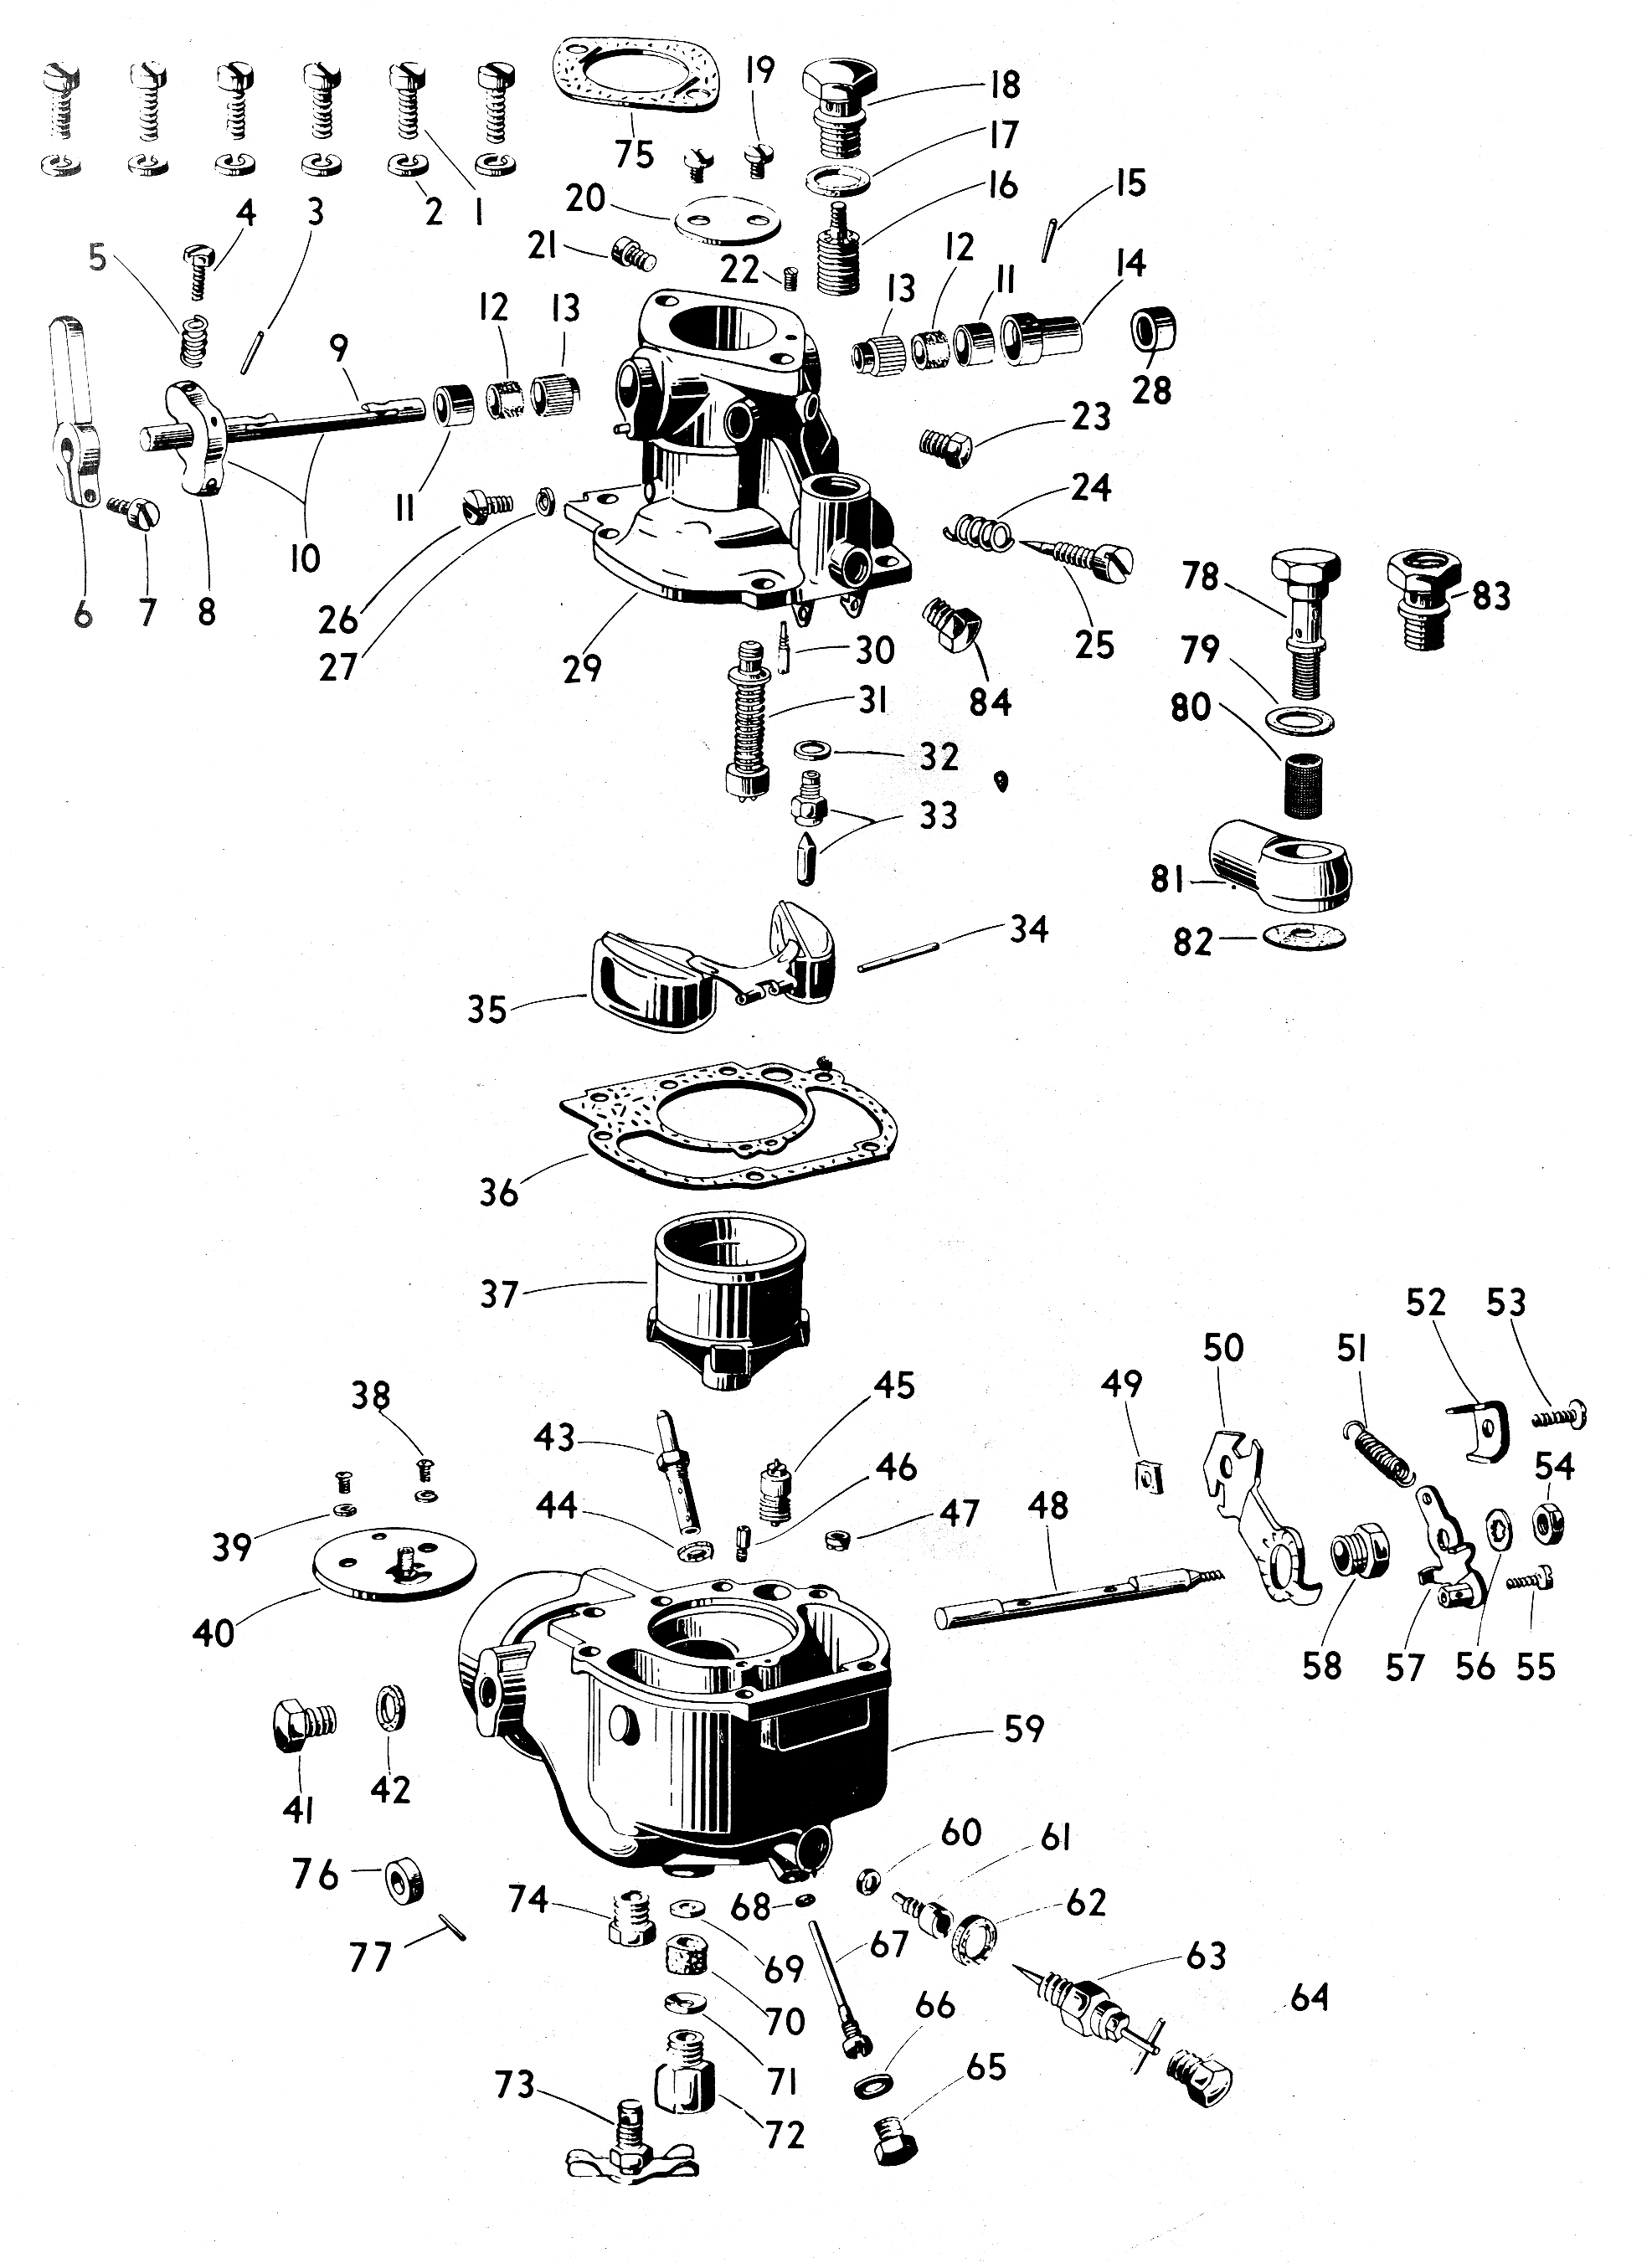 Zenith Type 63 exploded view